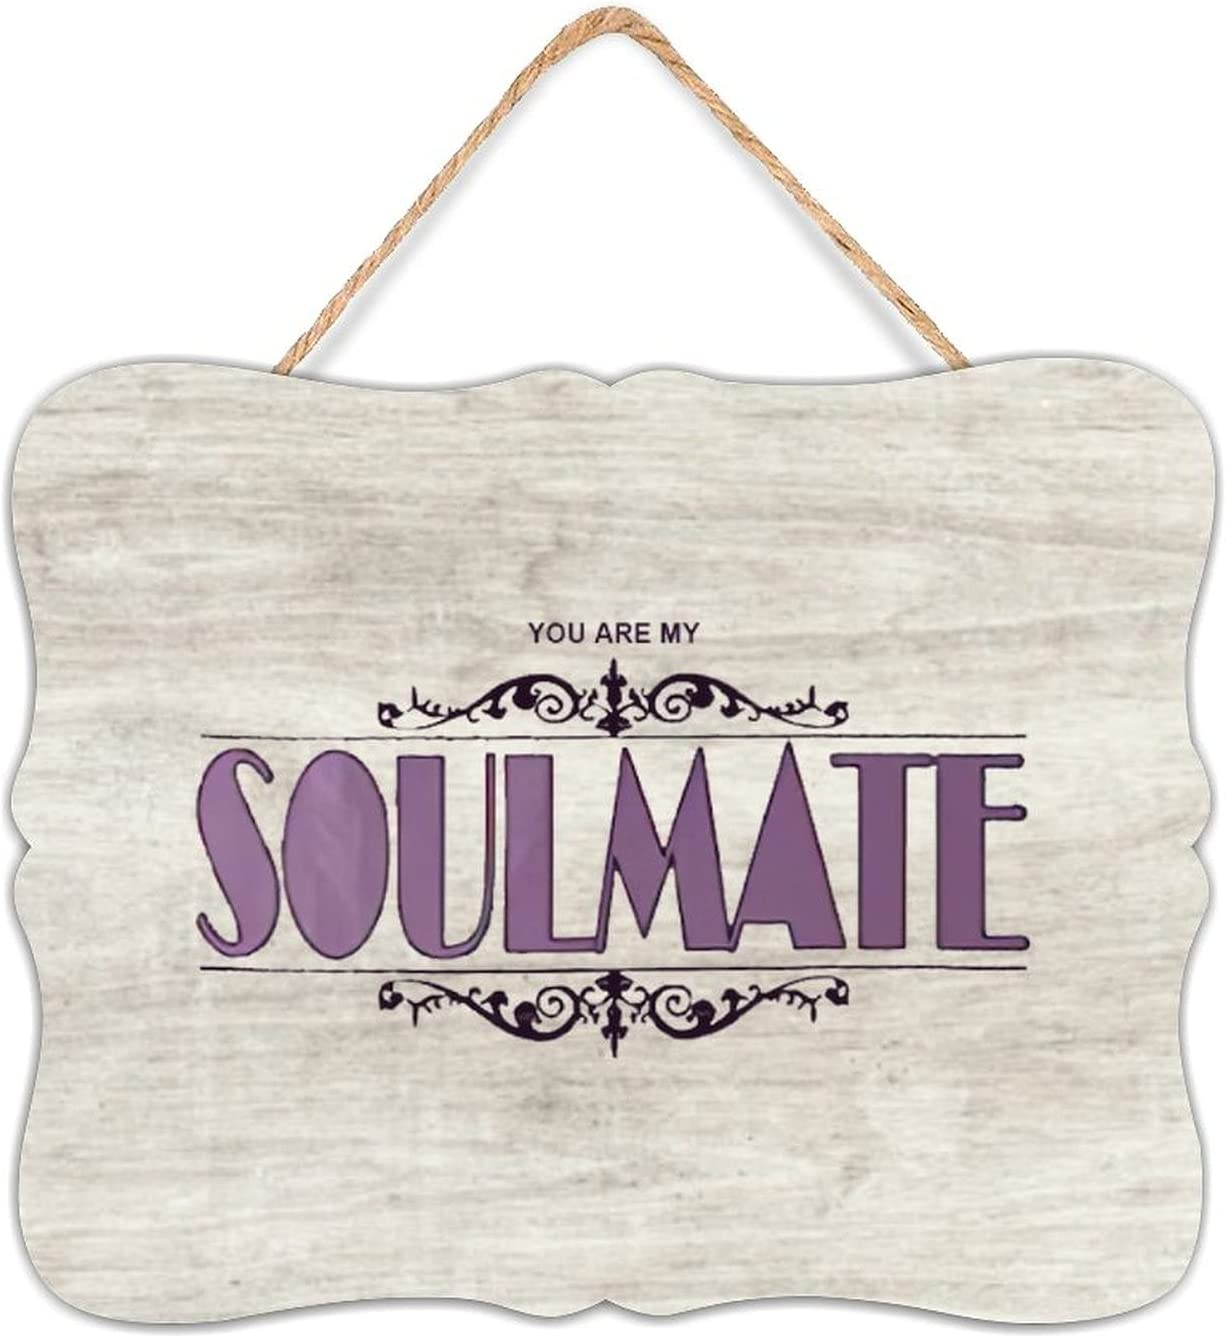 Wooden Listed You are My Soulmate Novelty Hanging Plaque Wood Sign Wall Decor for Kitchen Living Room Home 7.8